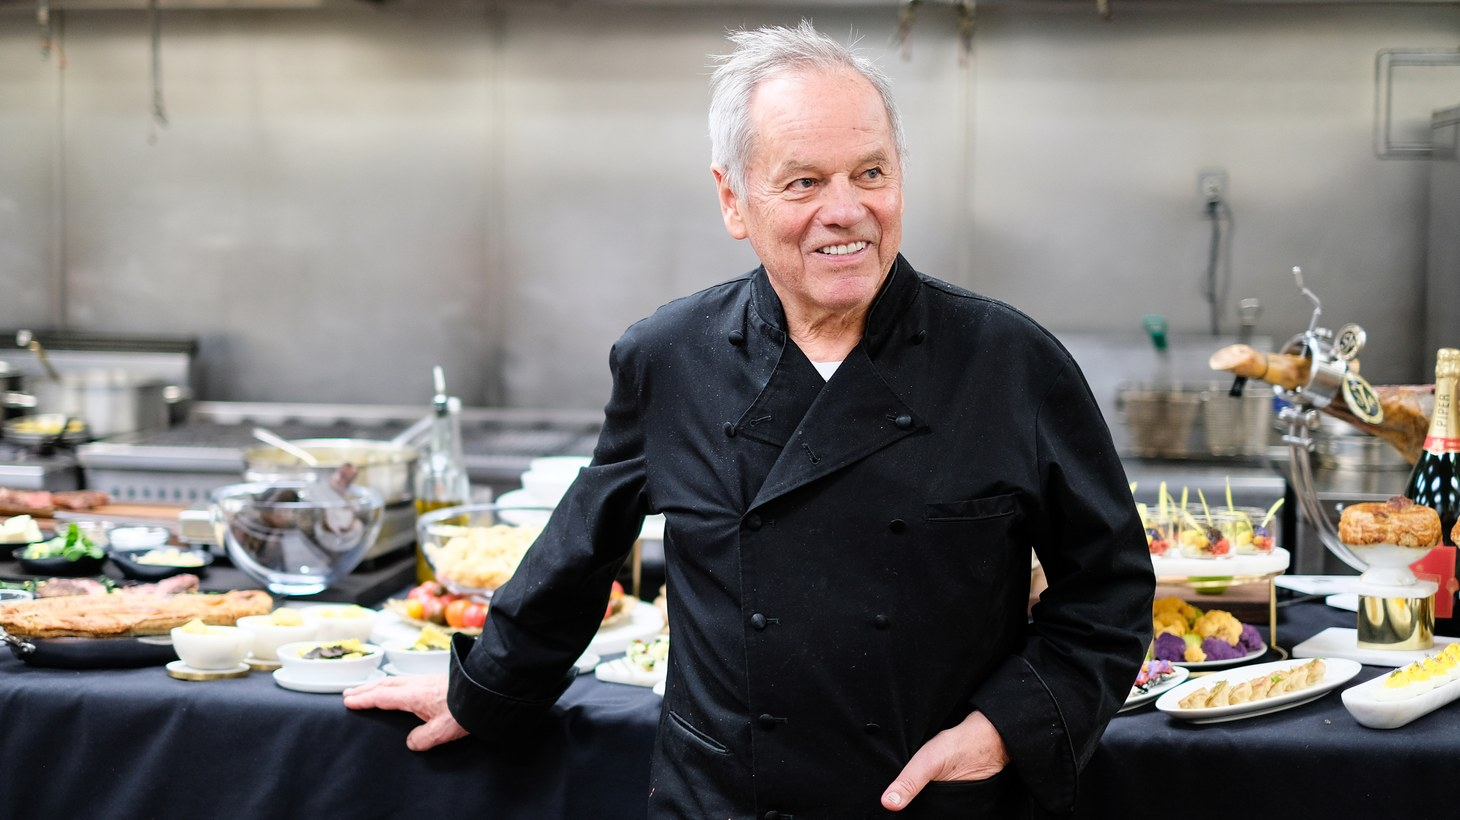 Chef Wolfgang Puck in front of his 25th Governors Ball spread at Wolfgang Puck Catering Kitchen in Hollywood.